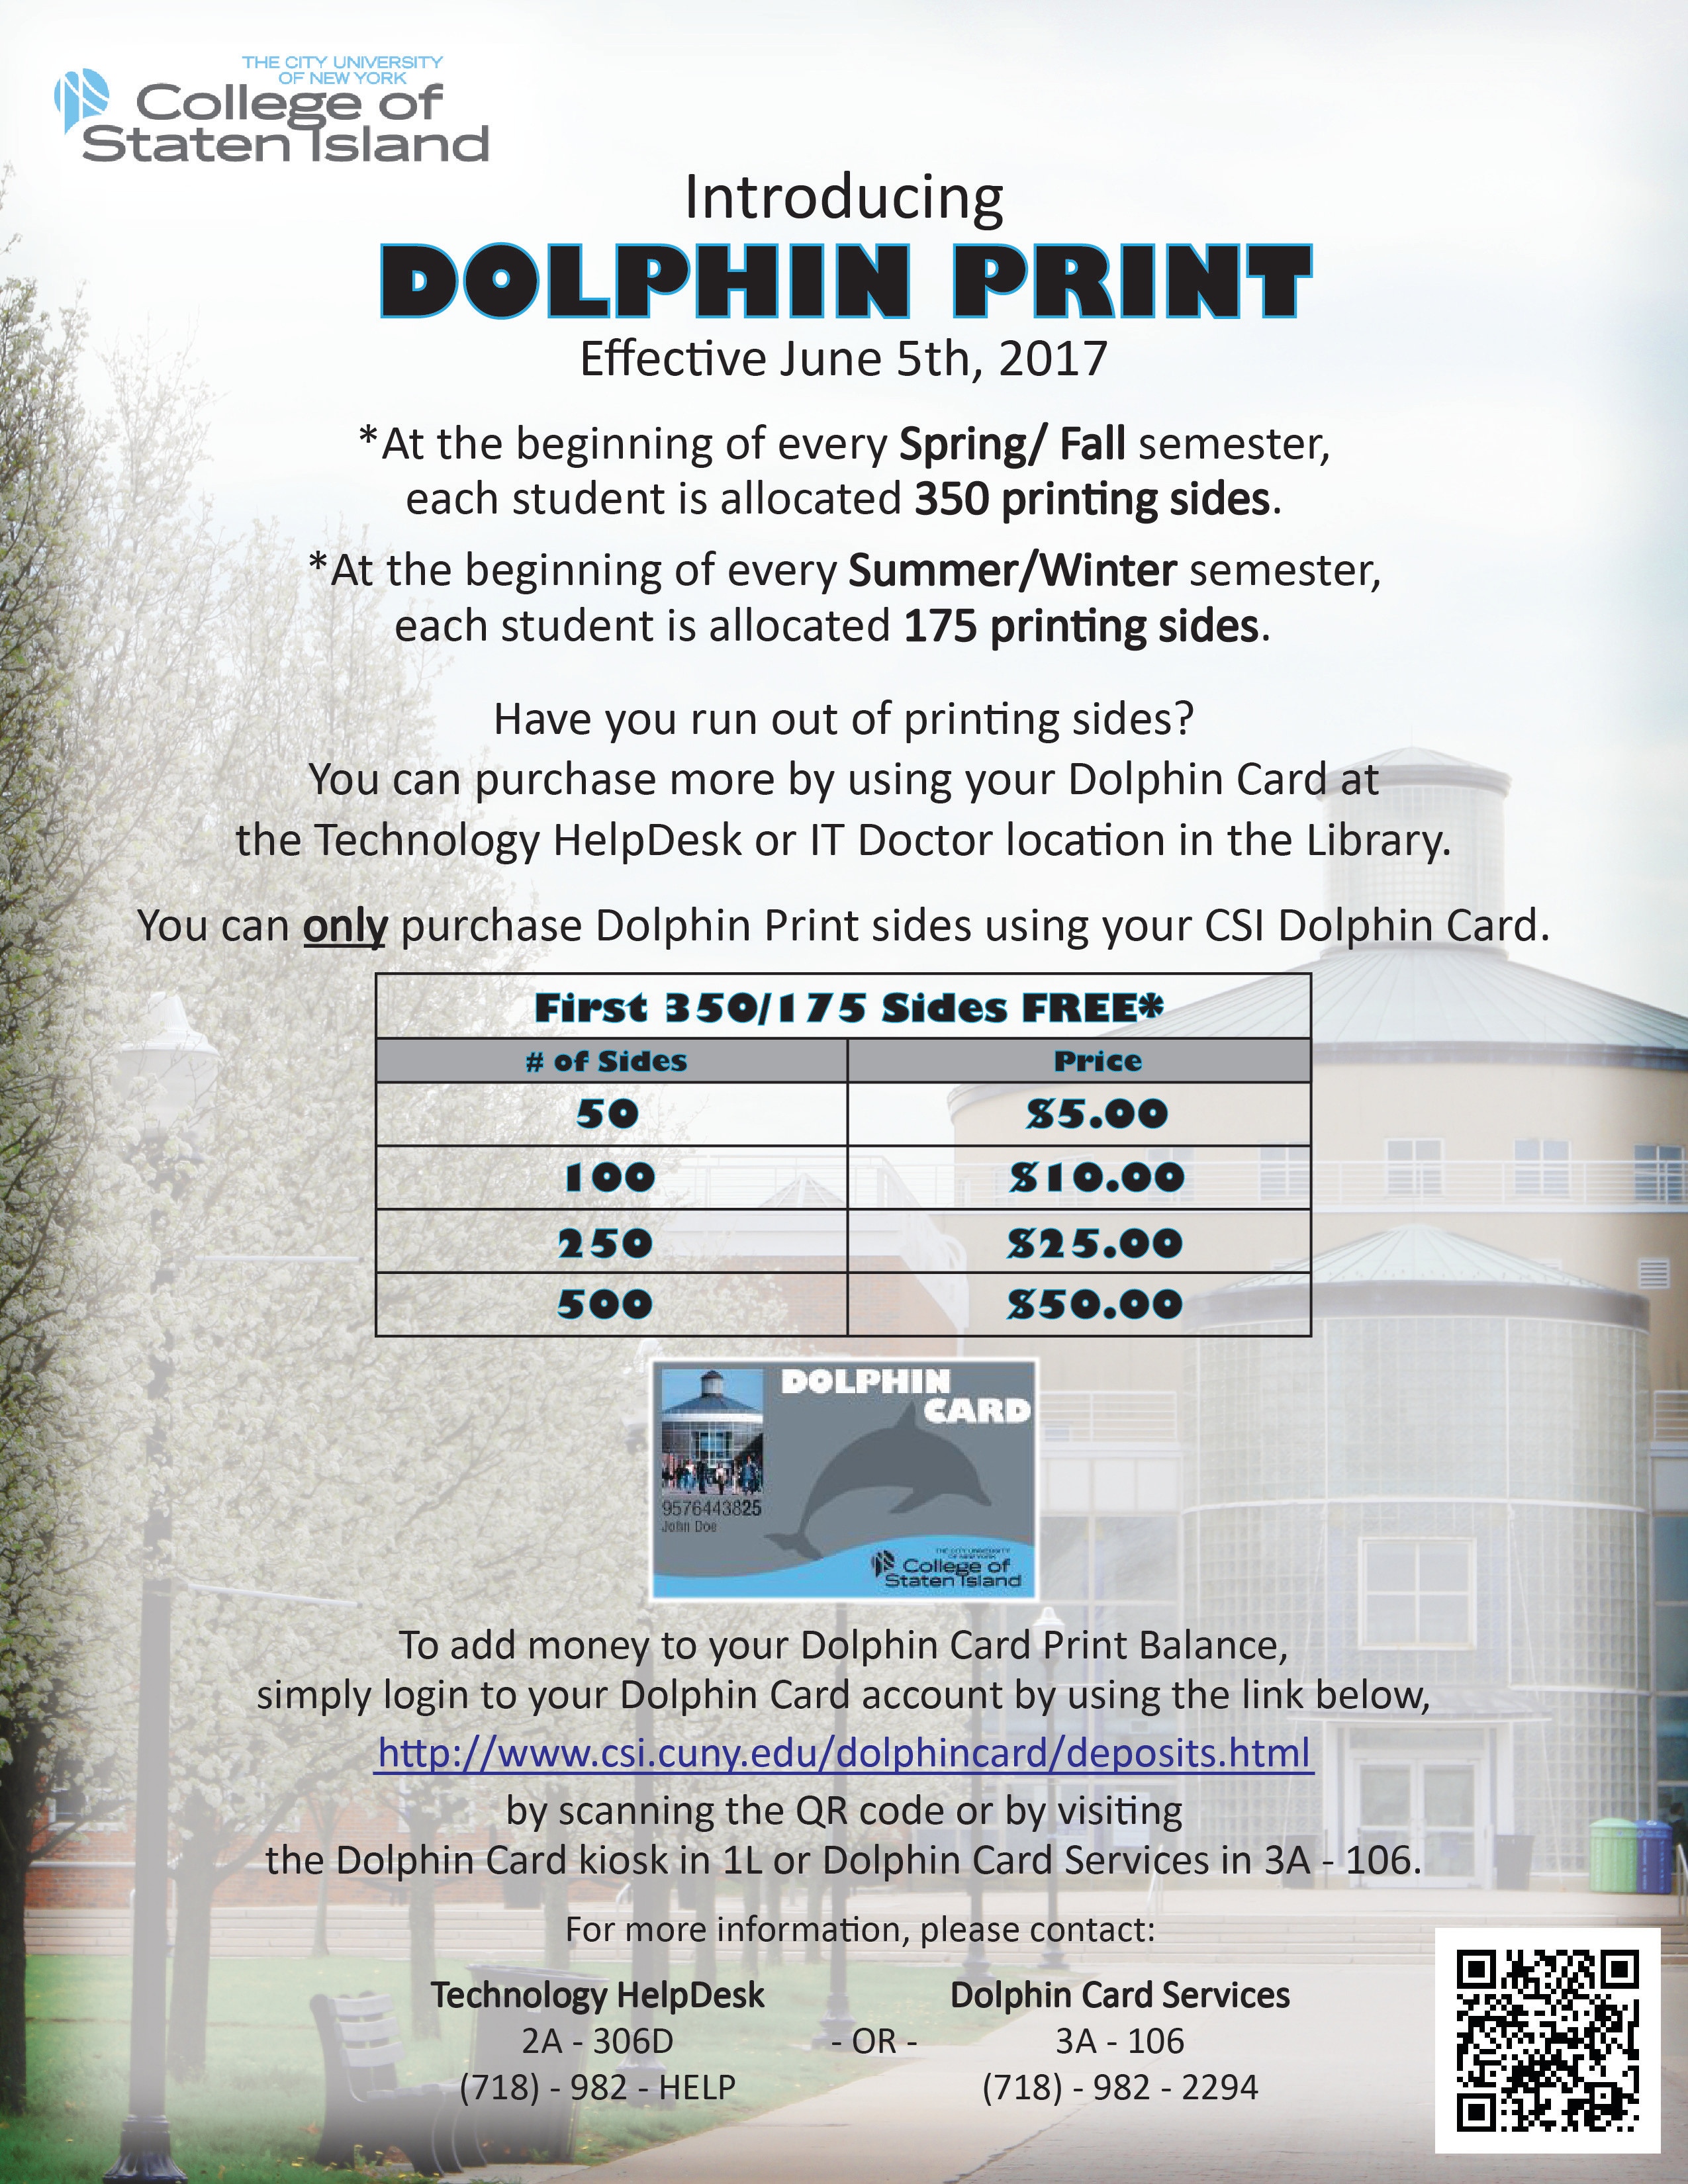 CSI Dolphin Print Policy